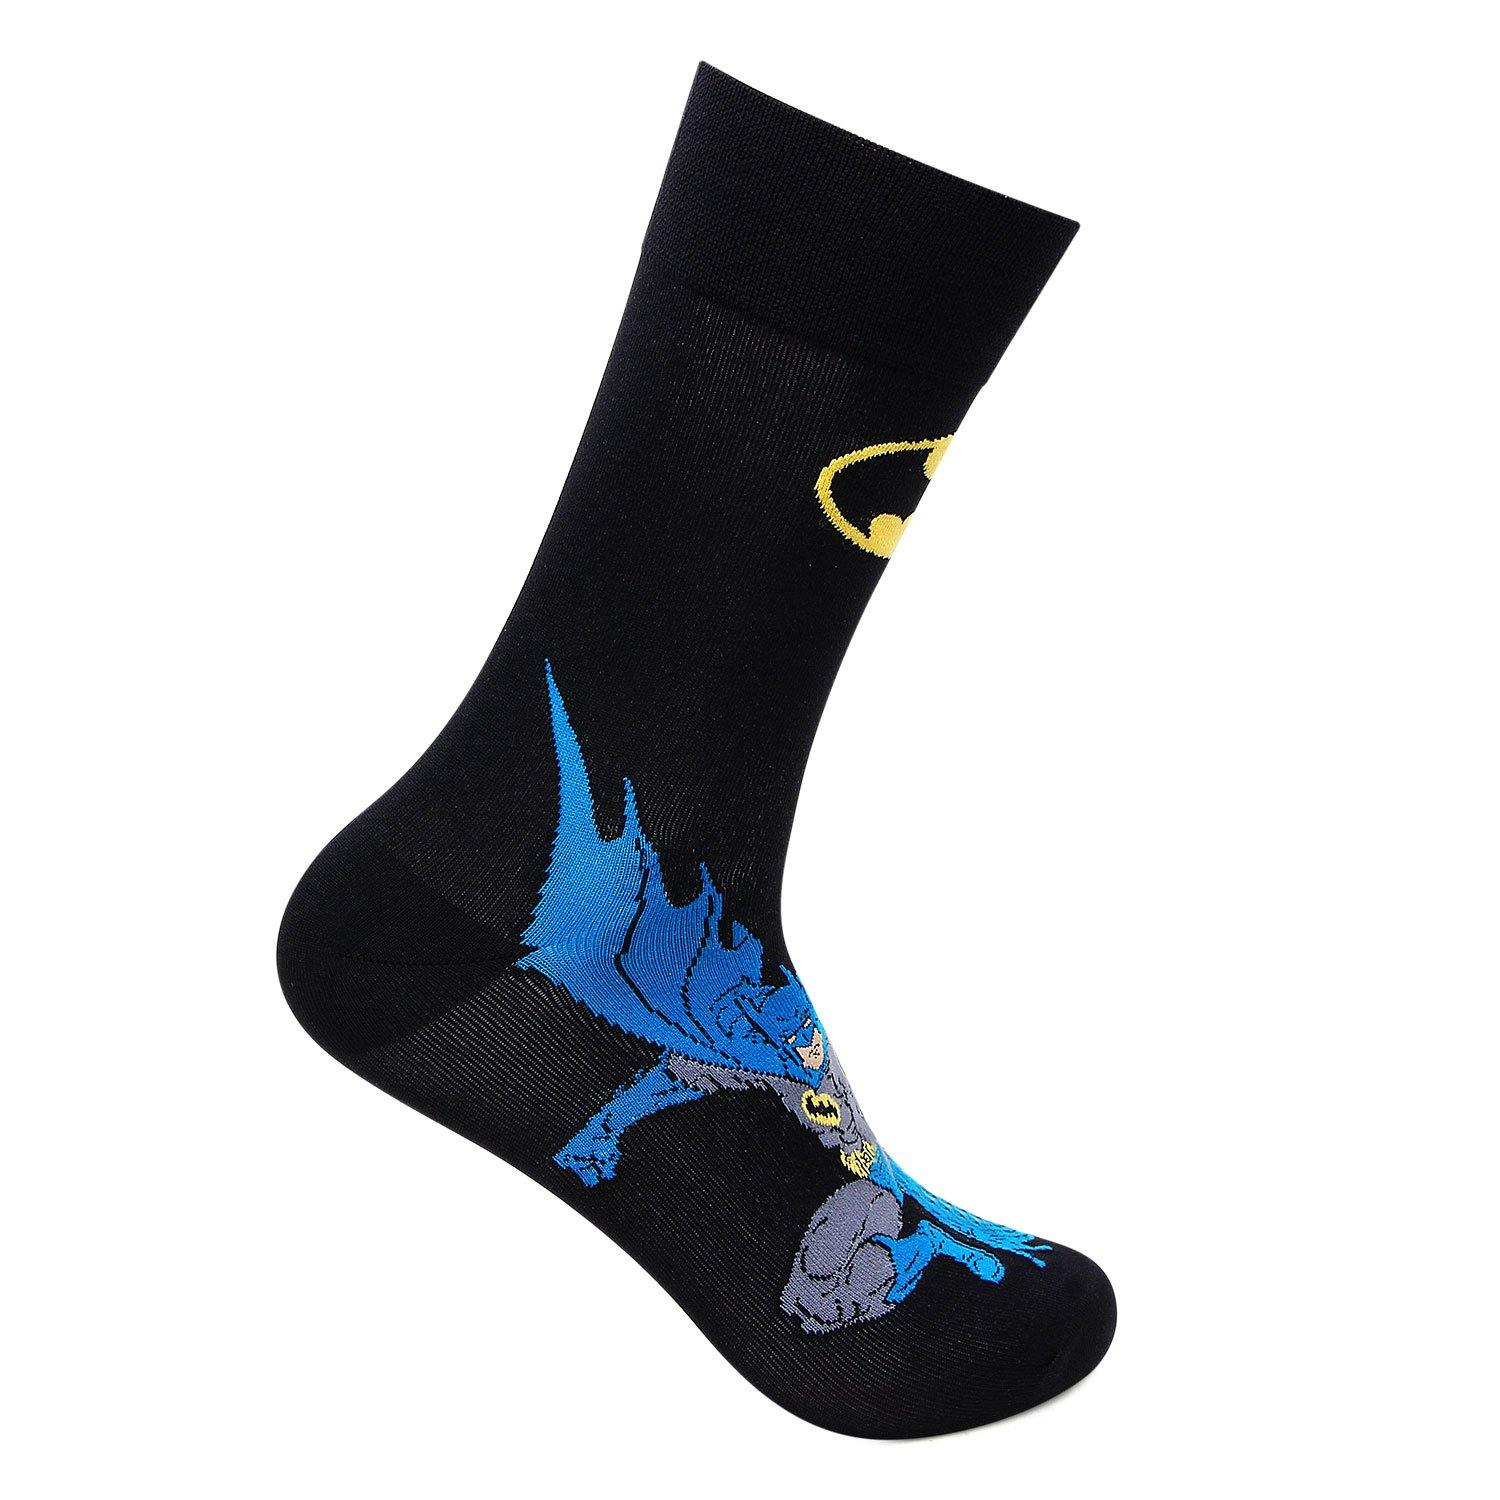 Batman Crew Socks for Men